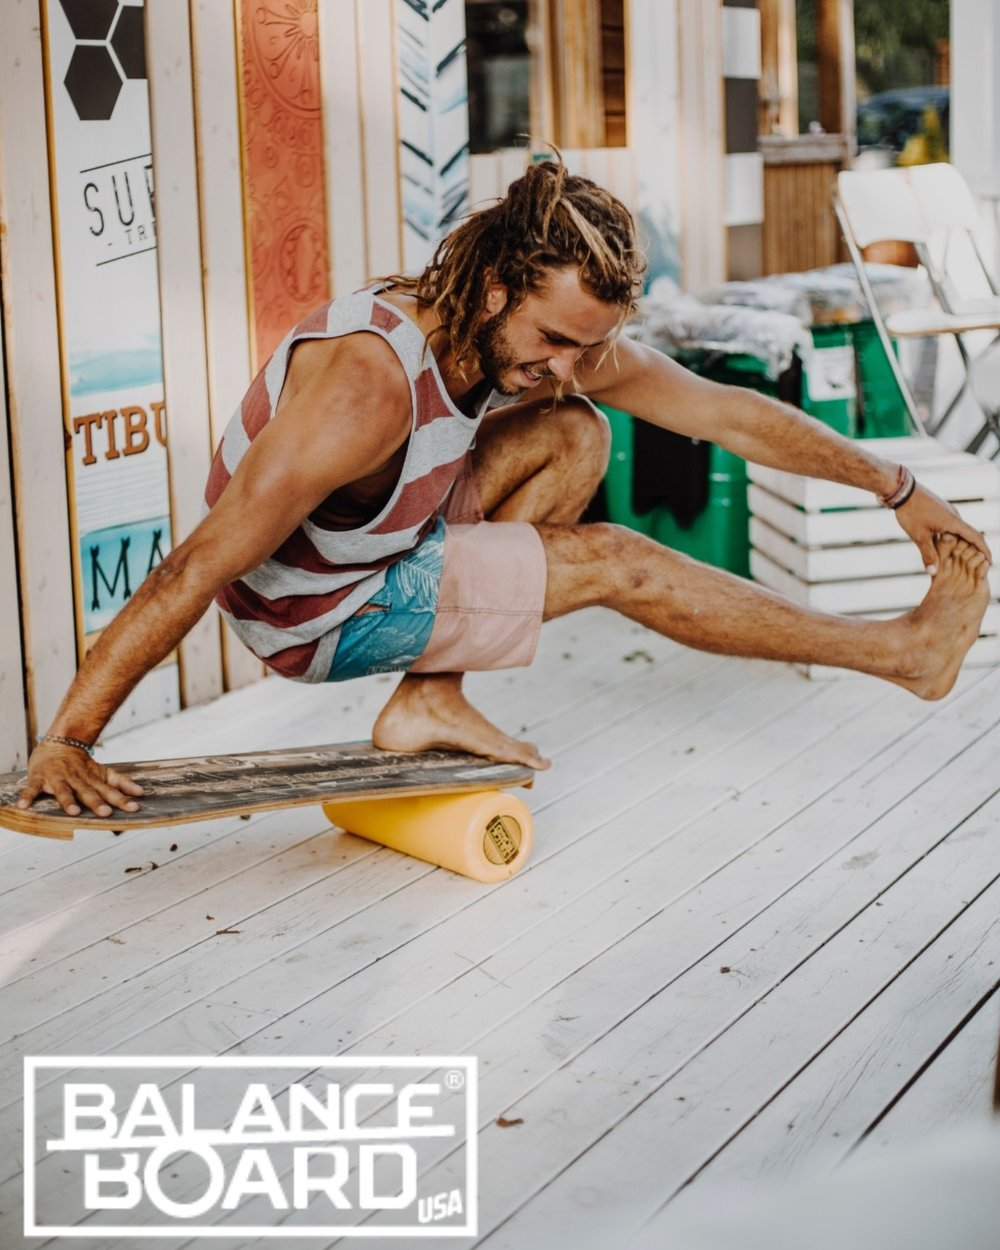 ALL ROUND WORKOUT - Developed working together with professional athletes and has been proven to be an effective tool for fine motor skills development. Coordination of small muscles, and synchronization with the eyes is crucial part of any sports and injury prevention training.Trickboard Balance Board gives you the opportunity to improve your stability and balance and use it with any other athletics like canoeing, bicycling, martial arts, dance, basketball and many more. This list has no end. Surprise your friends and training partners with new skills.